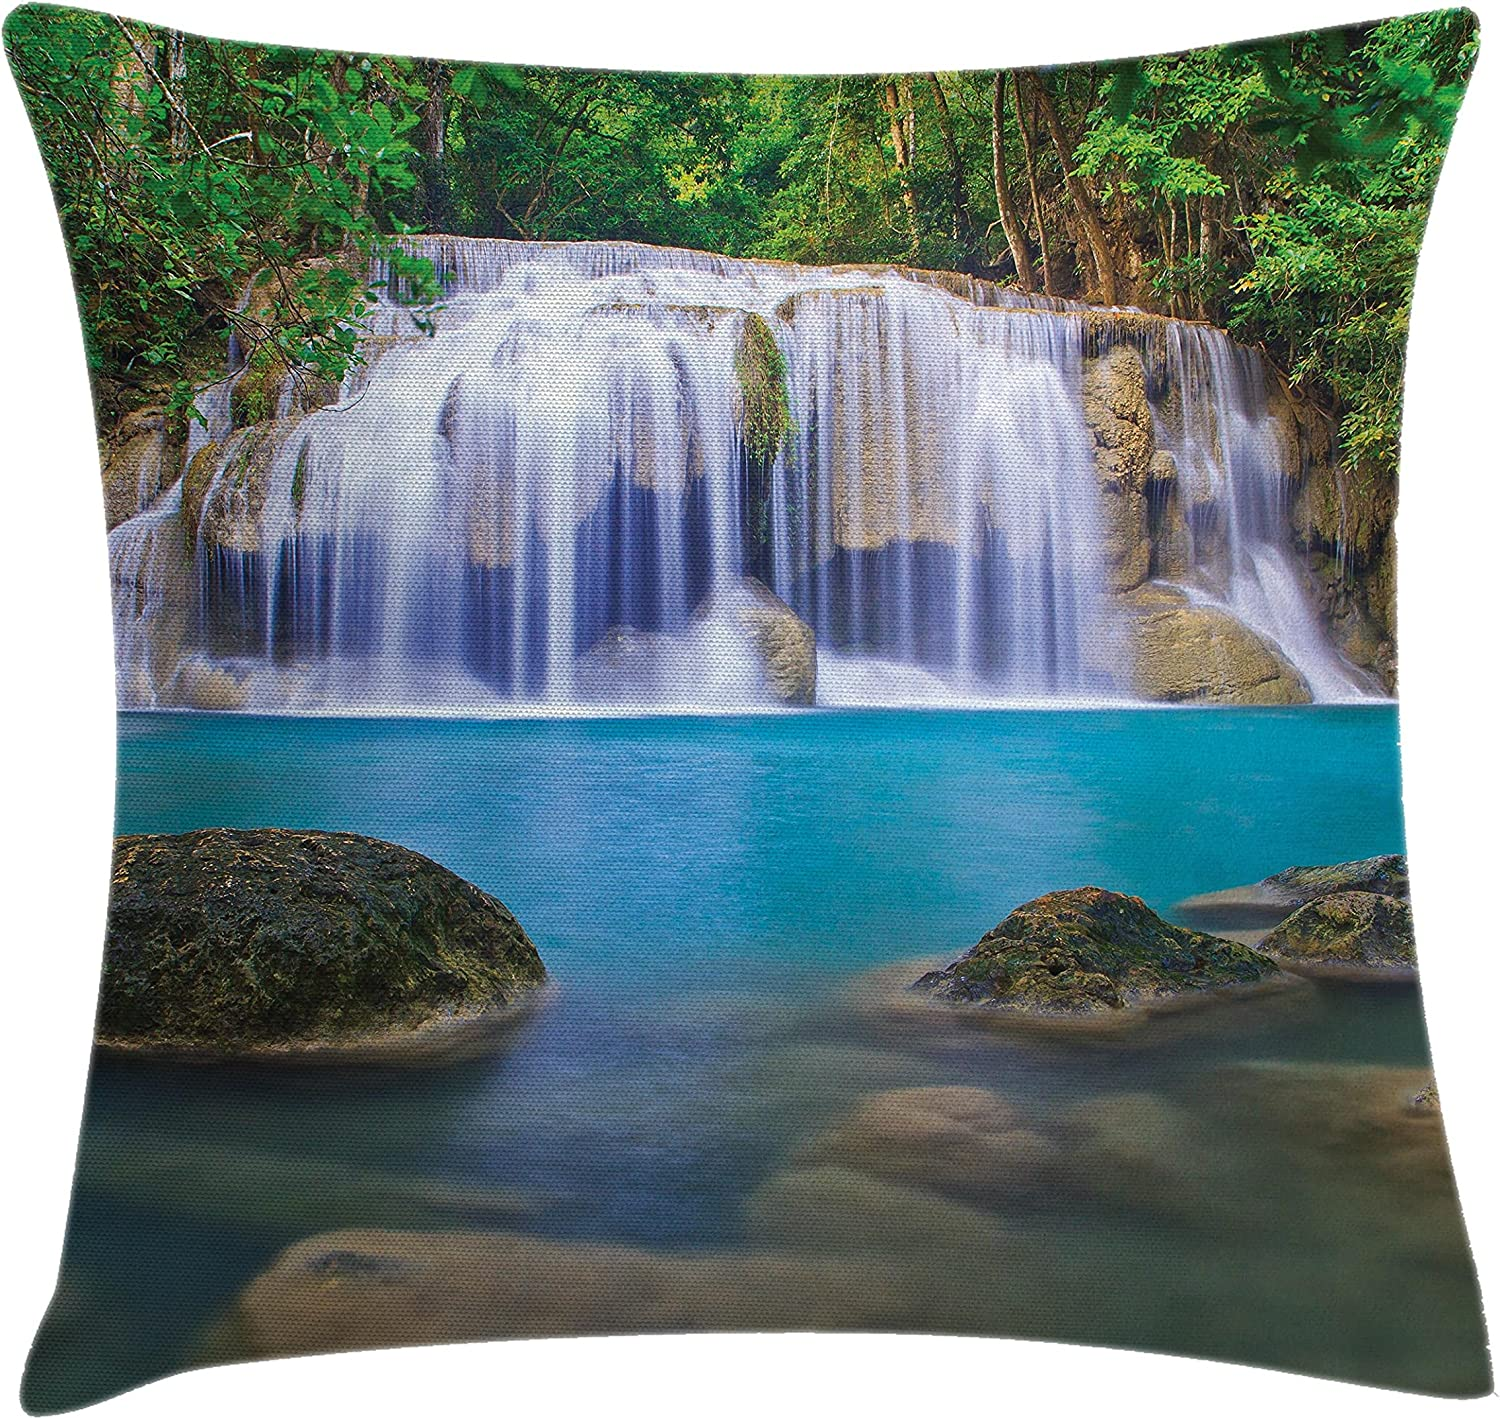 Amazon Com Lunarable Waterfall Throw Pillow Cushion Cover Falls Flowing Down By Crystal Water Secret Paradise In The Earth Print Decorative Square Accent Pillow Case 40 X 40 Multicolor Home Kitchen